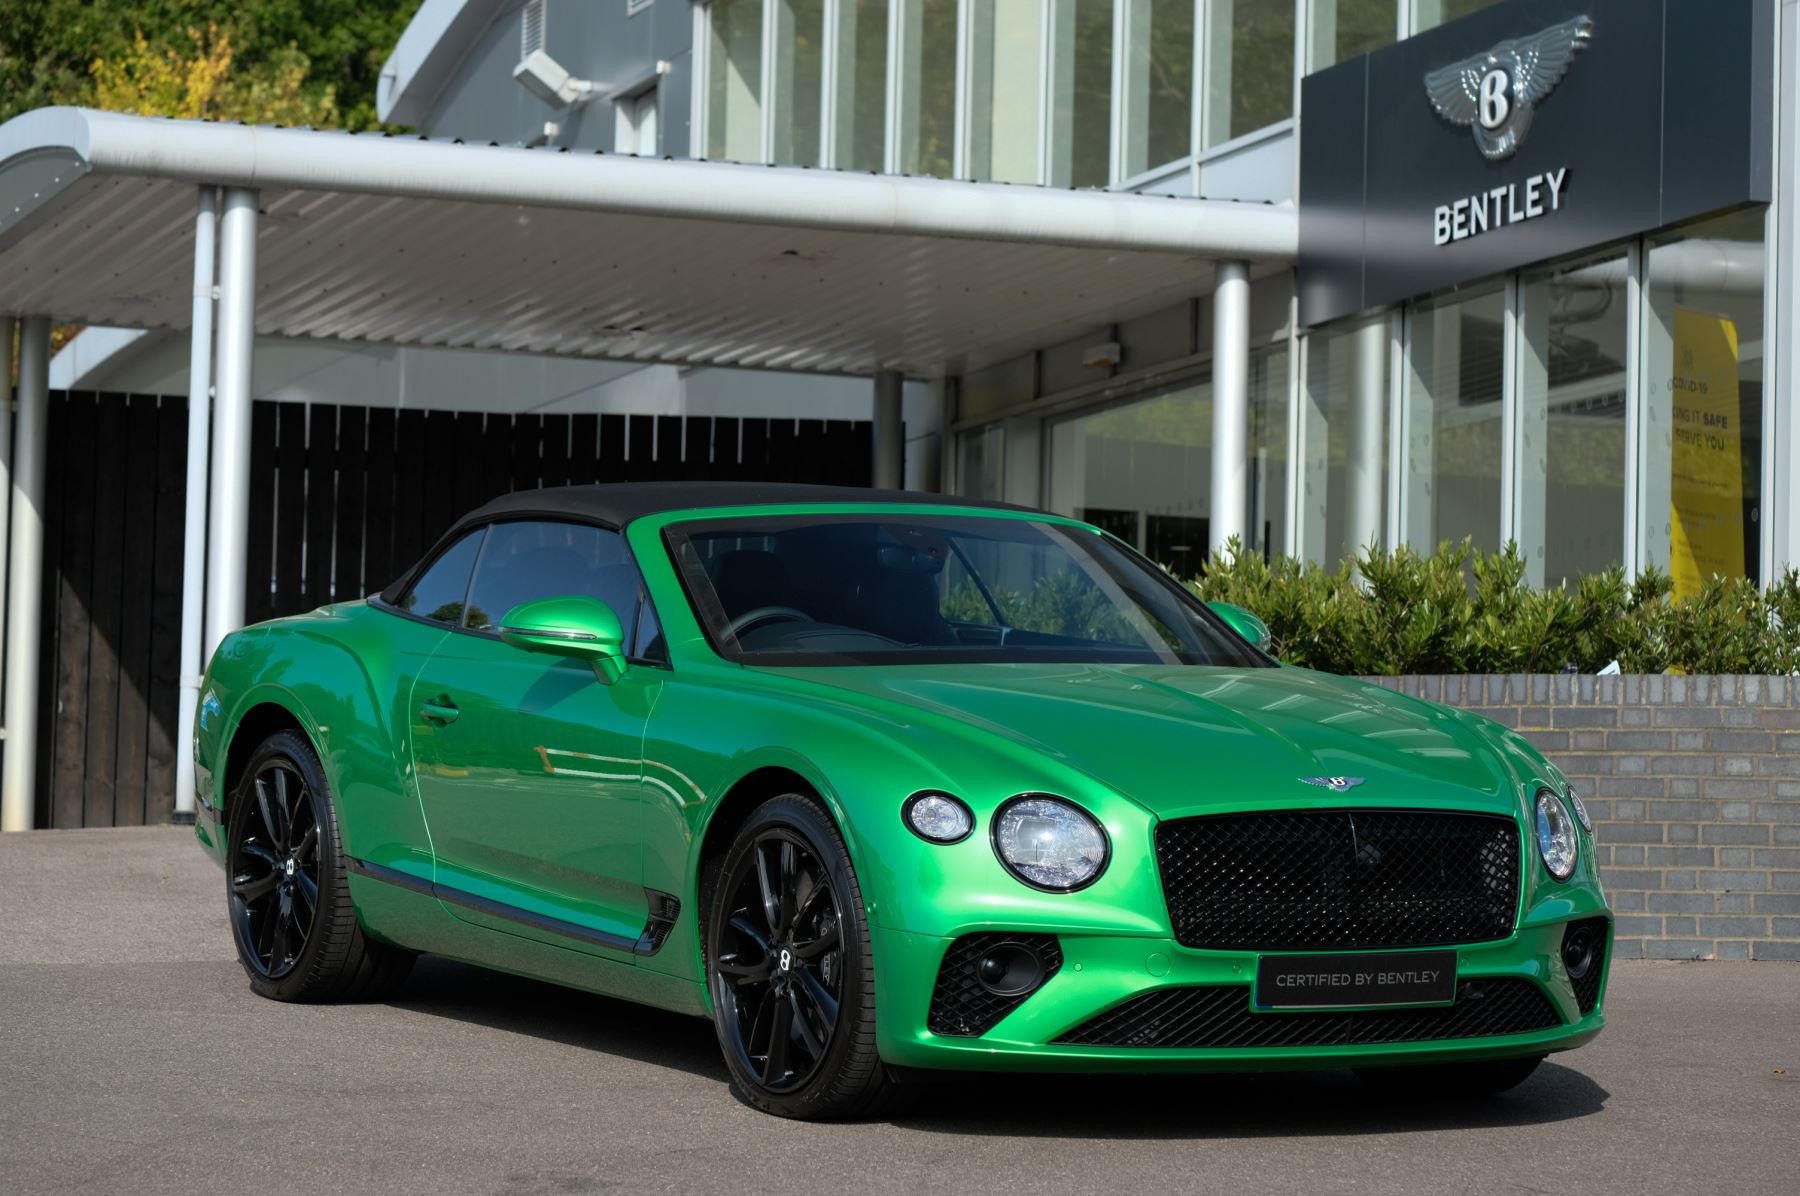 Bentley Continental GTC 6.0 W12 2dr Mulliner Driving Specification image 21